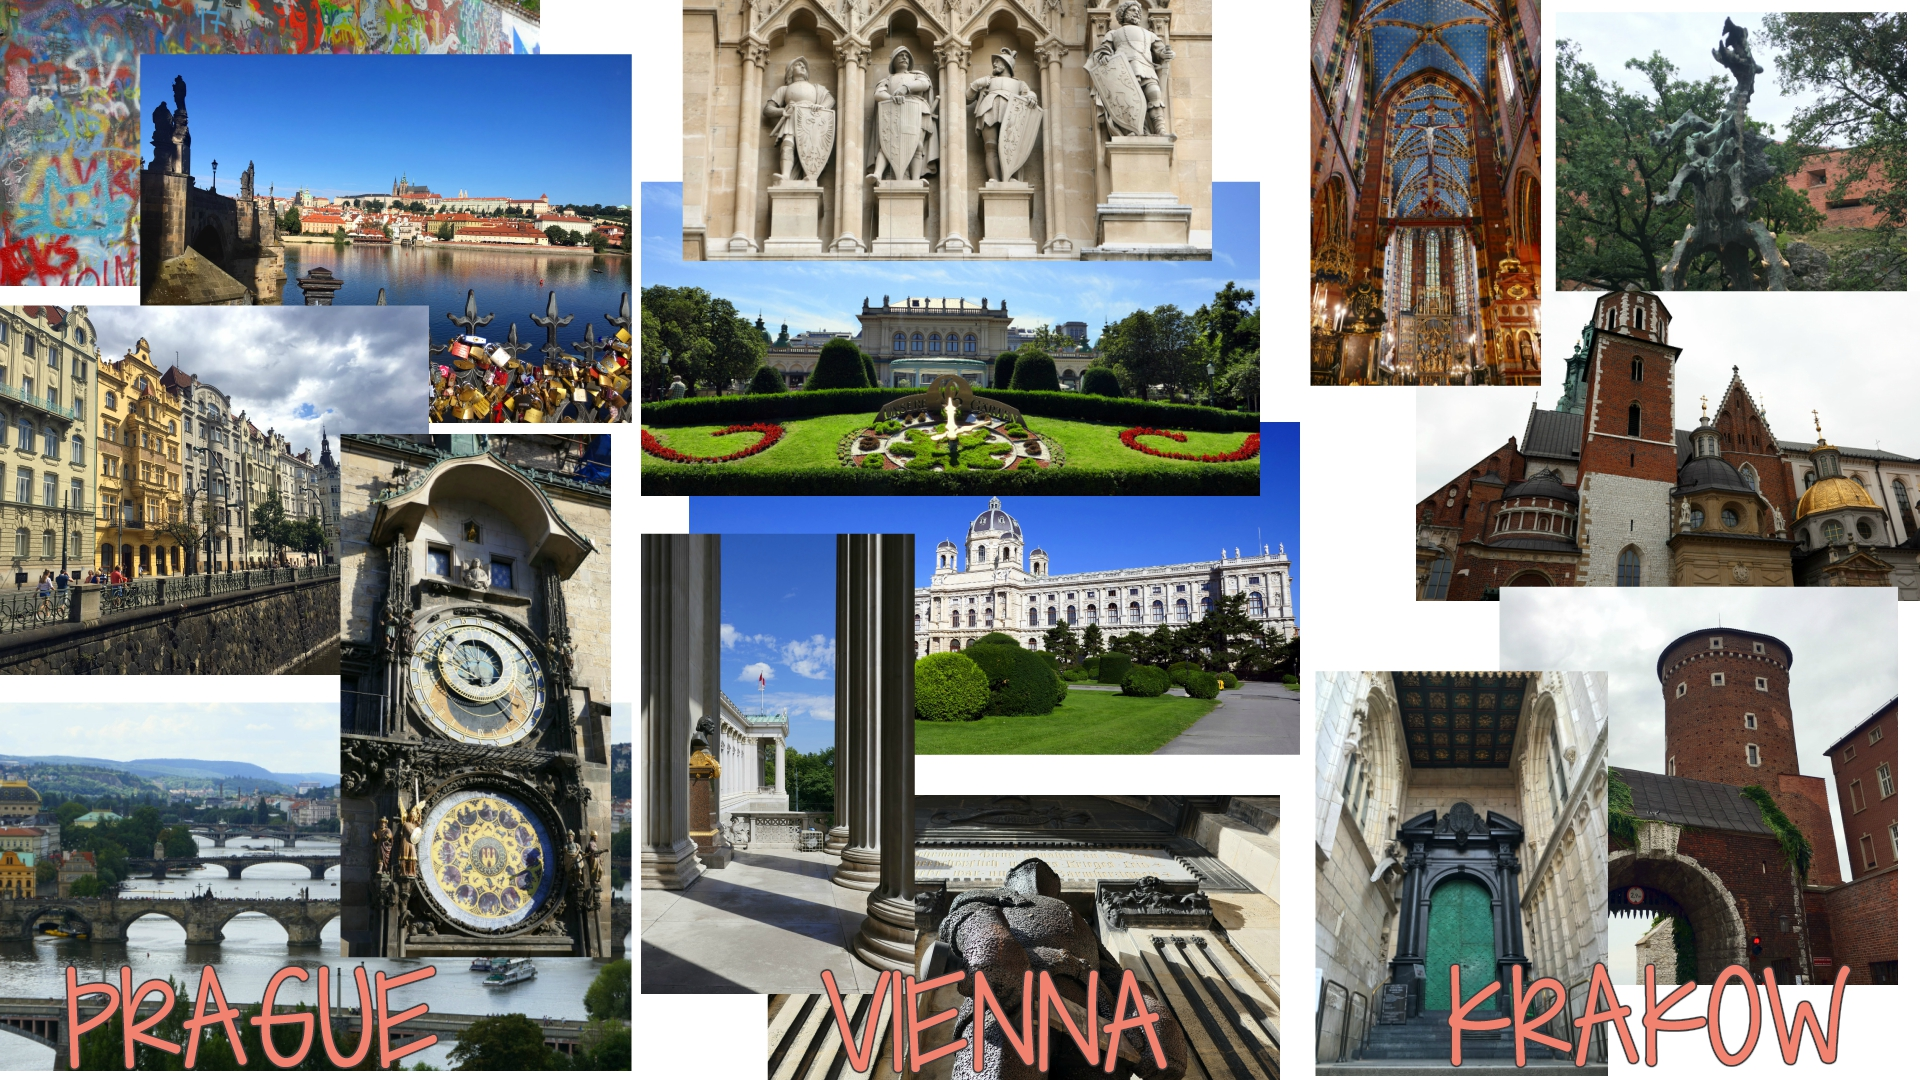 Each city was a unique and magnificent experience! Pictures on the left are of Prague, Czech Republic, in the center of Vienna, Austria, and on the right of Krakow, Poland.